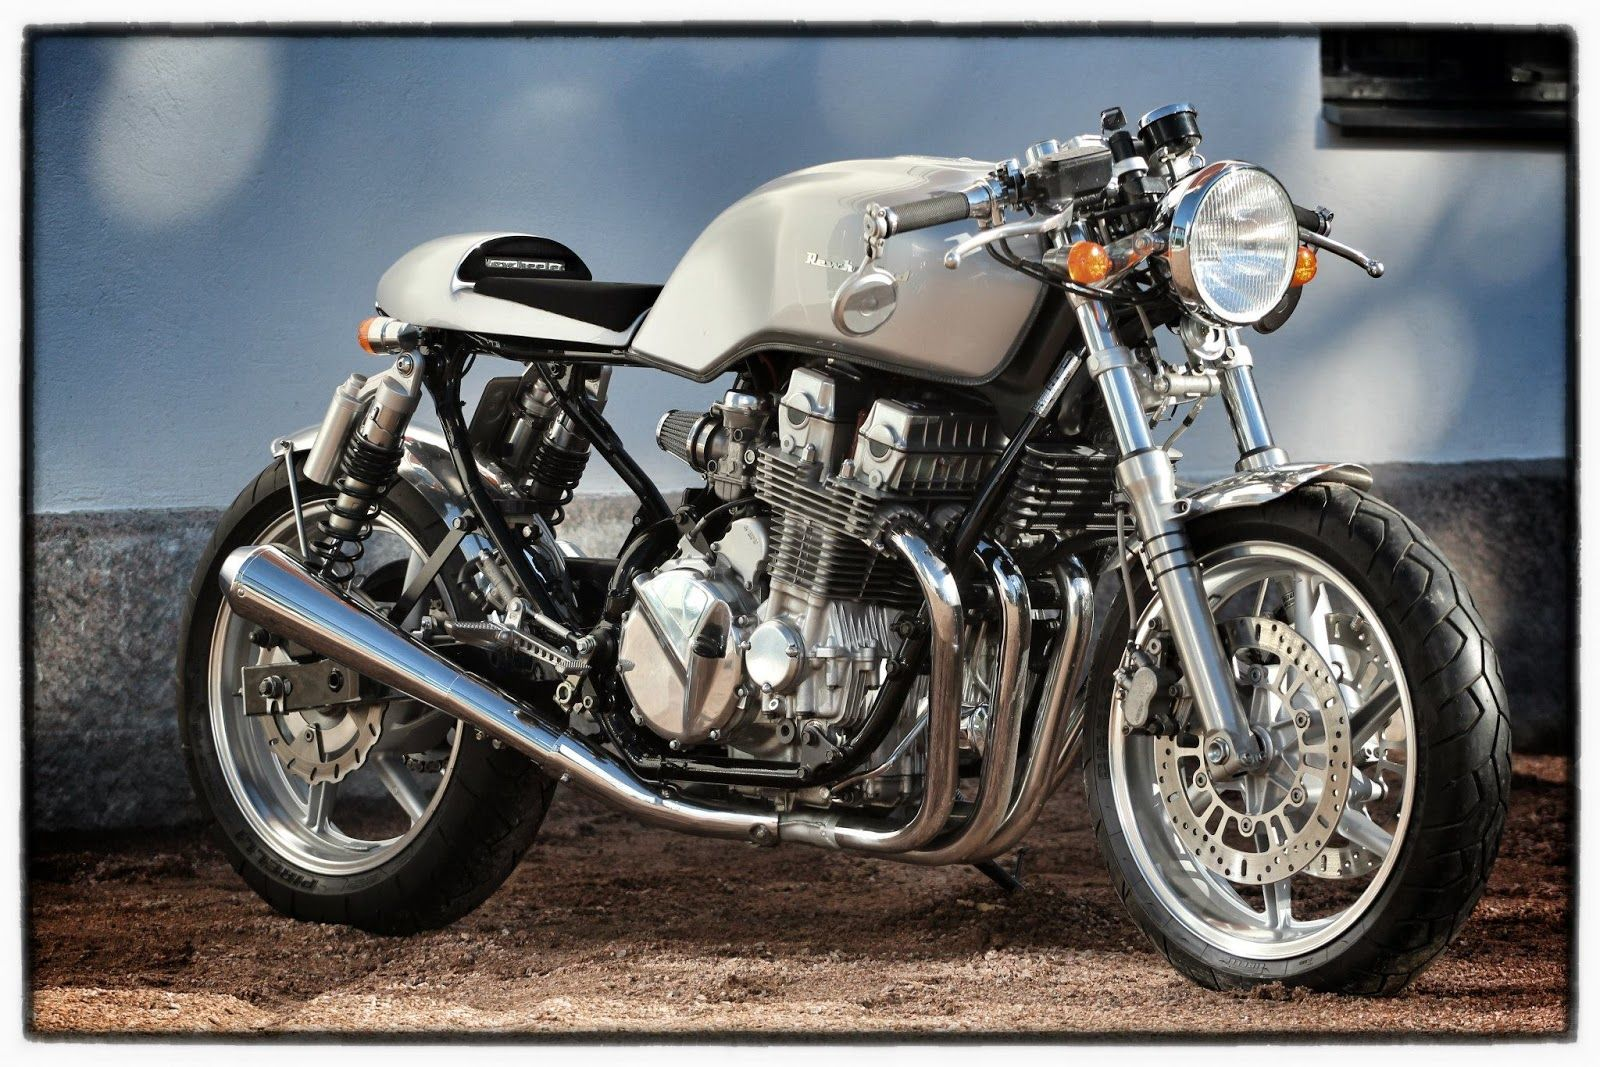 honda cb 750 cafe racer re-wheeledre-cycles bikes. what a nice